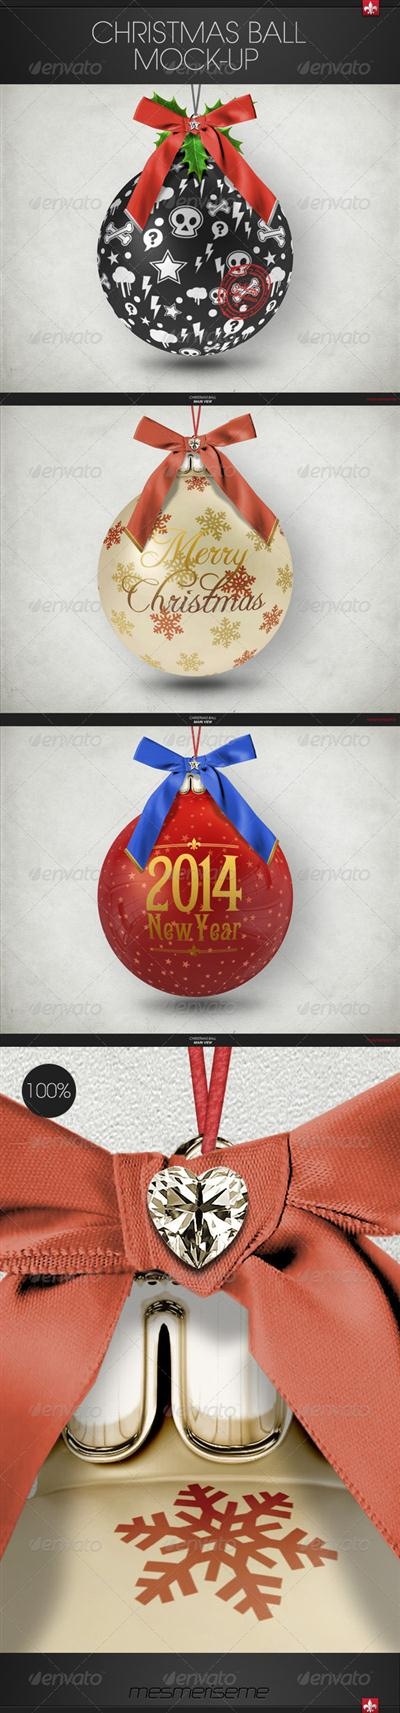 Christmas Ball Mock-up - GraphicRiver